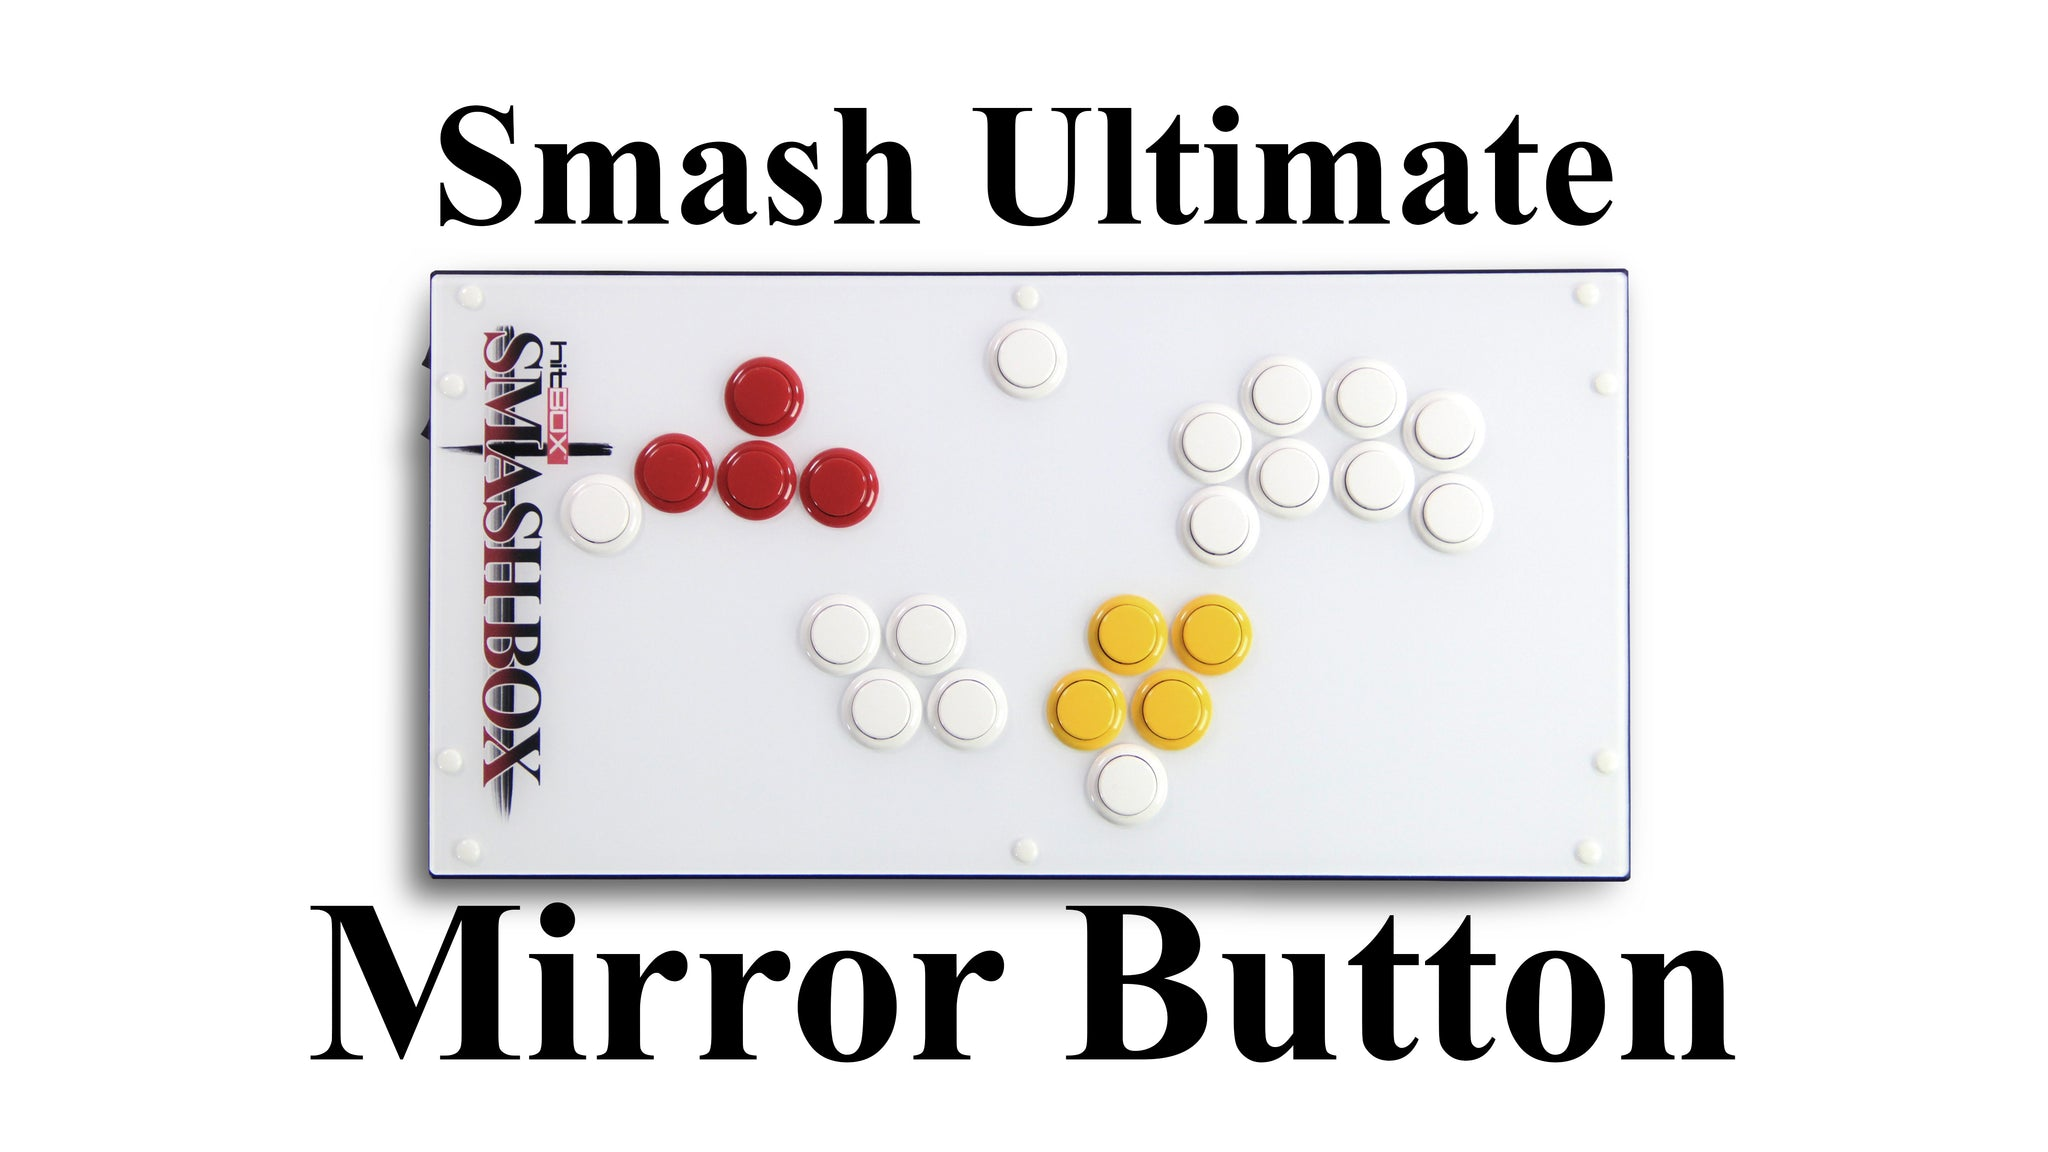 Mirror Button Introduction